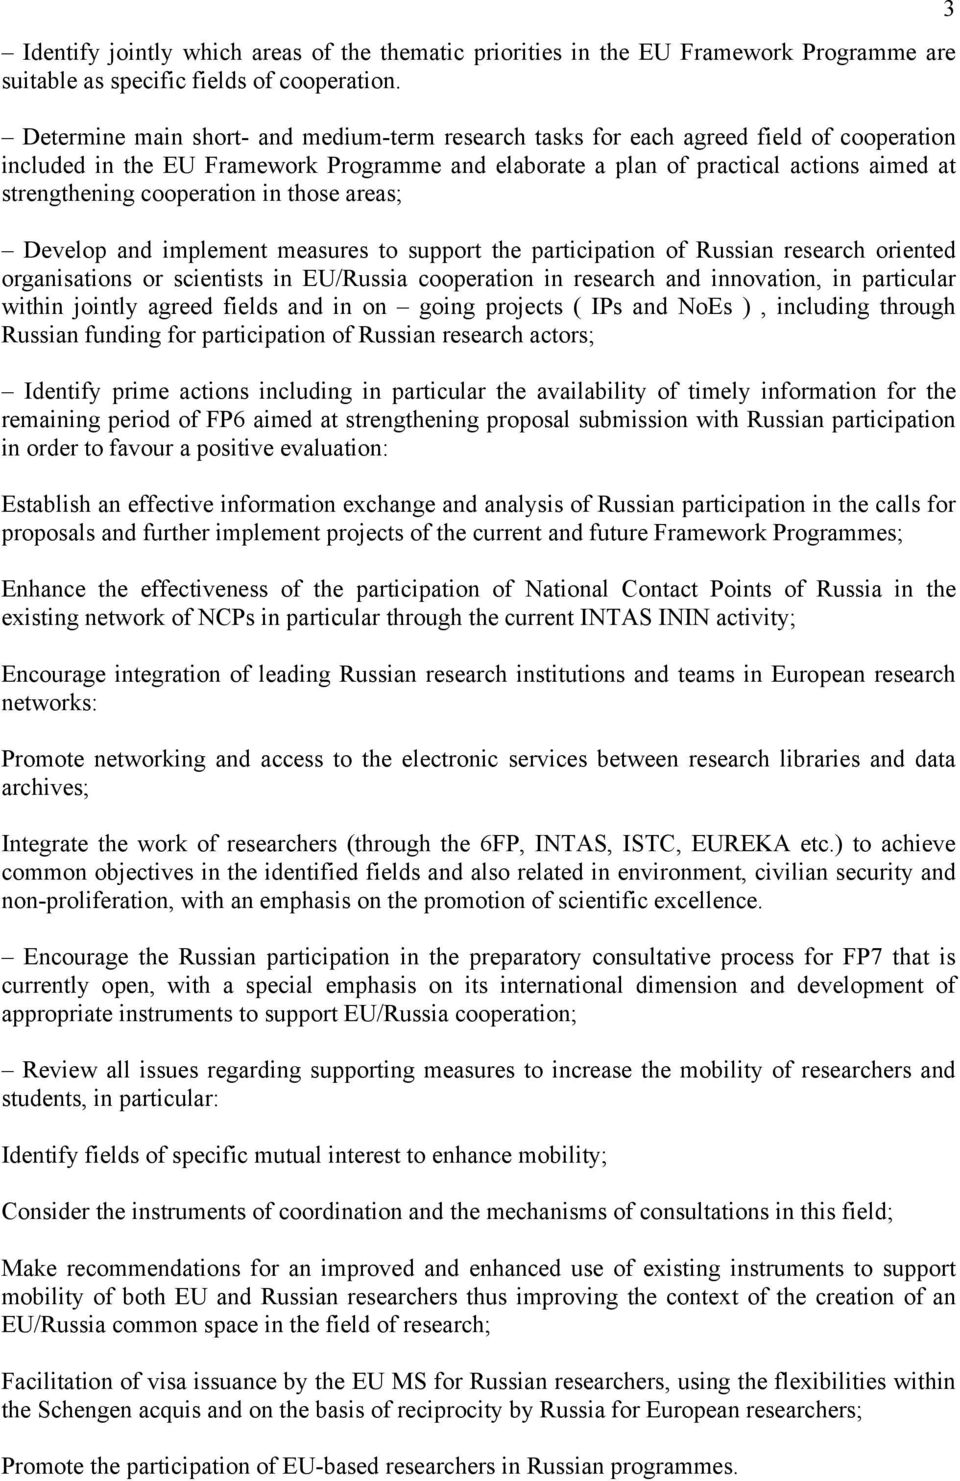 cooperation in those areas; Develop and implement measures to support the participation of Russian research oriented organisations or scientists in EU/Russia cooperation in research and innovation,